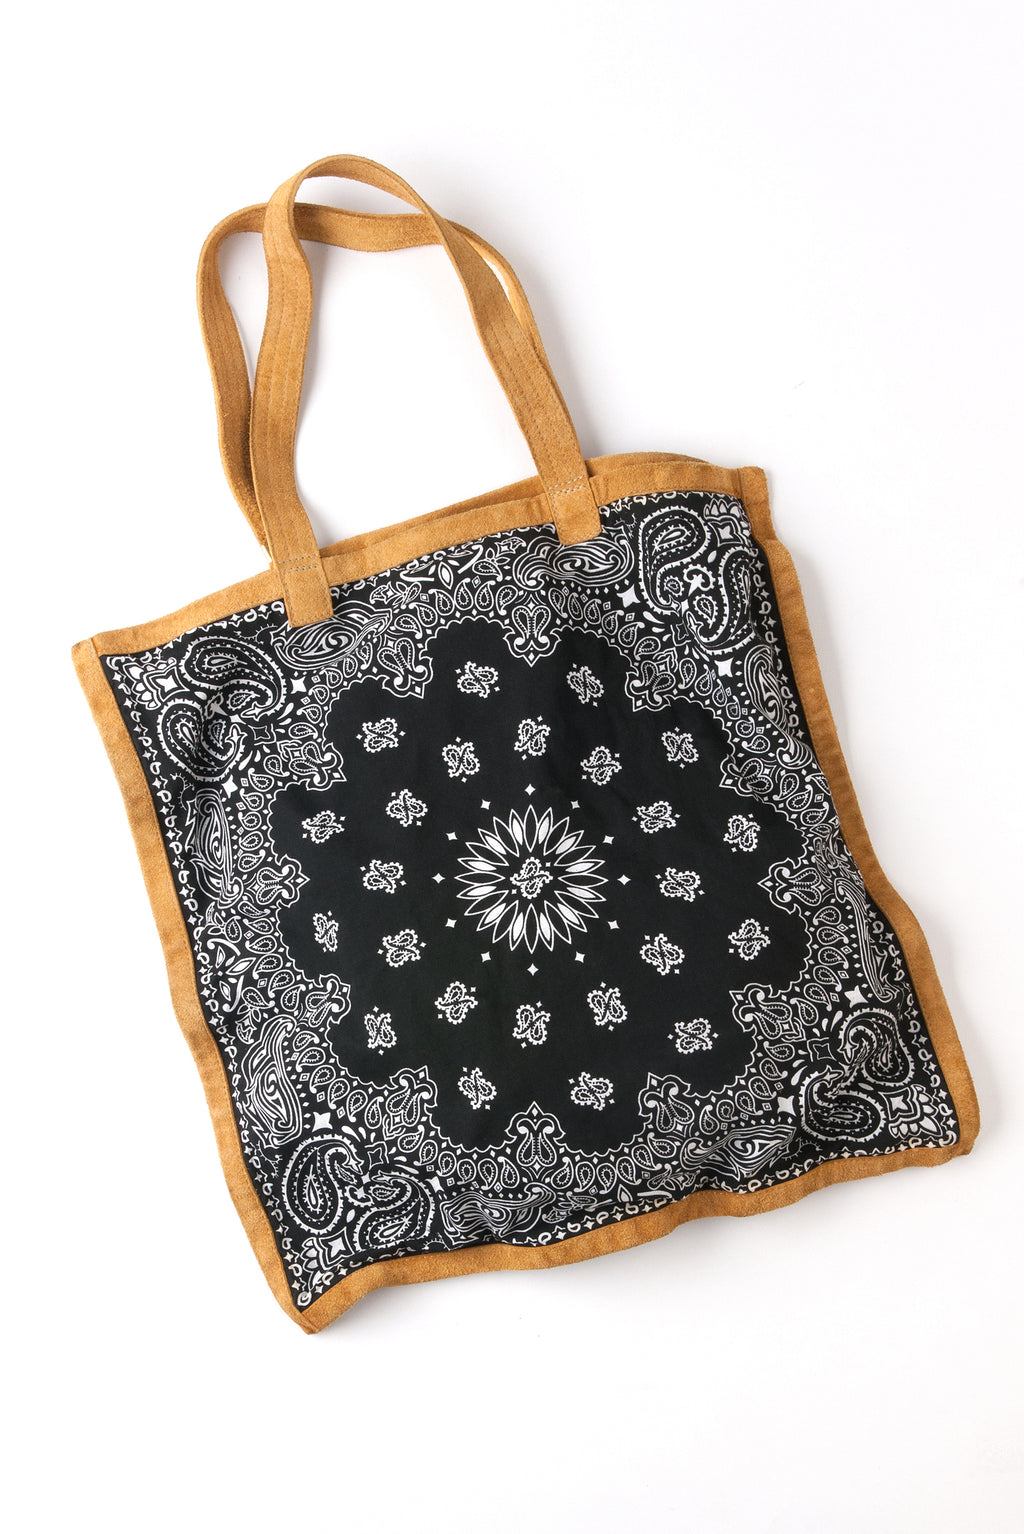 BANDANA TOTE IN BLACK AND NATURAL SUEDE